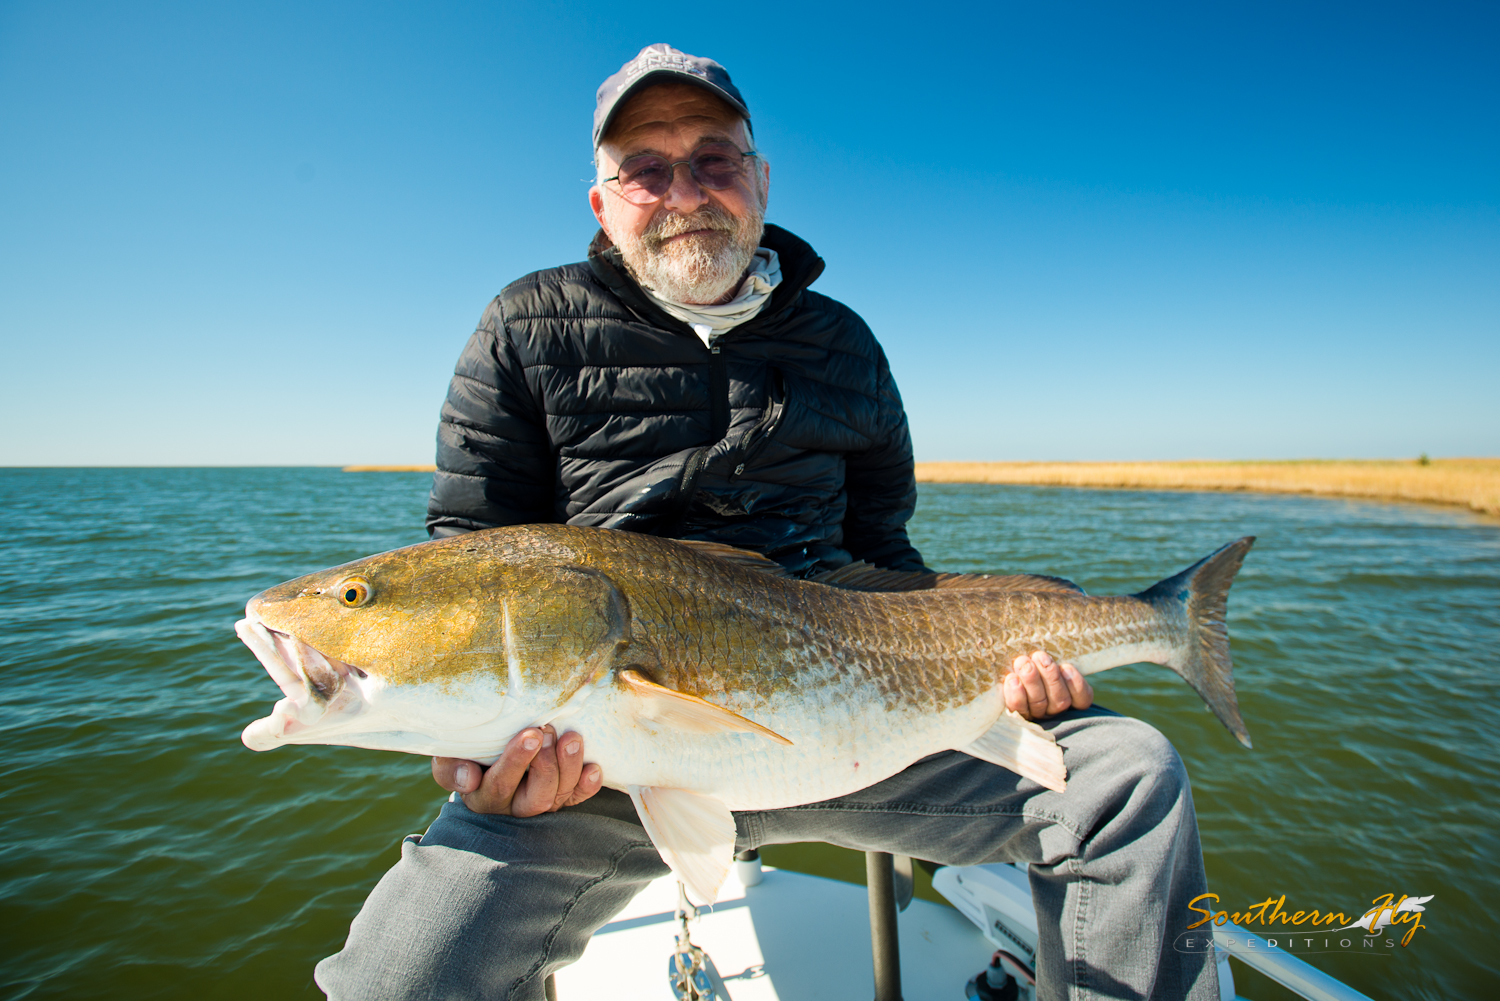 Southern Louisiana Spin Fishing Southern Fly Expeditions